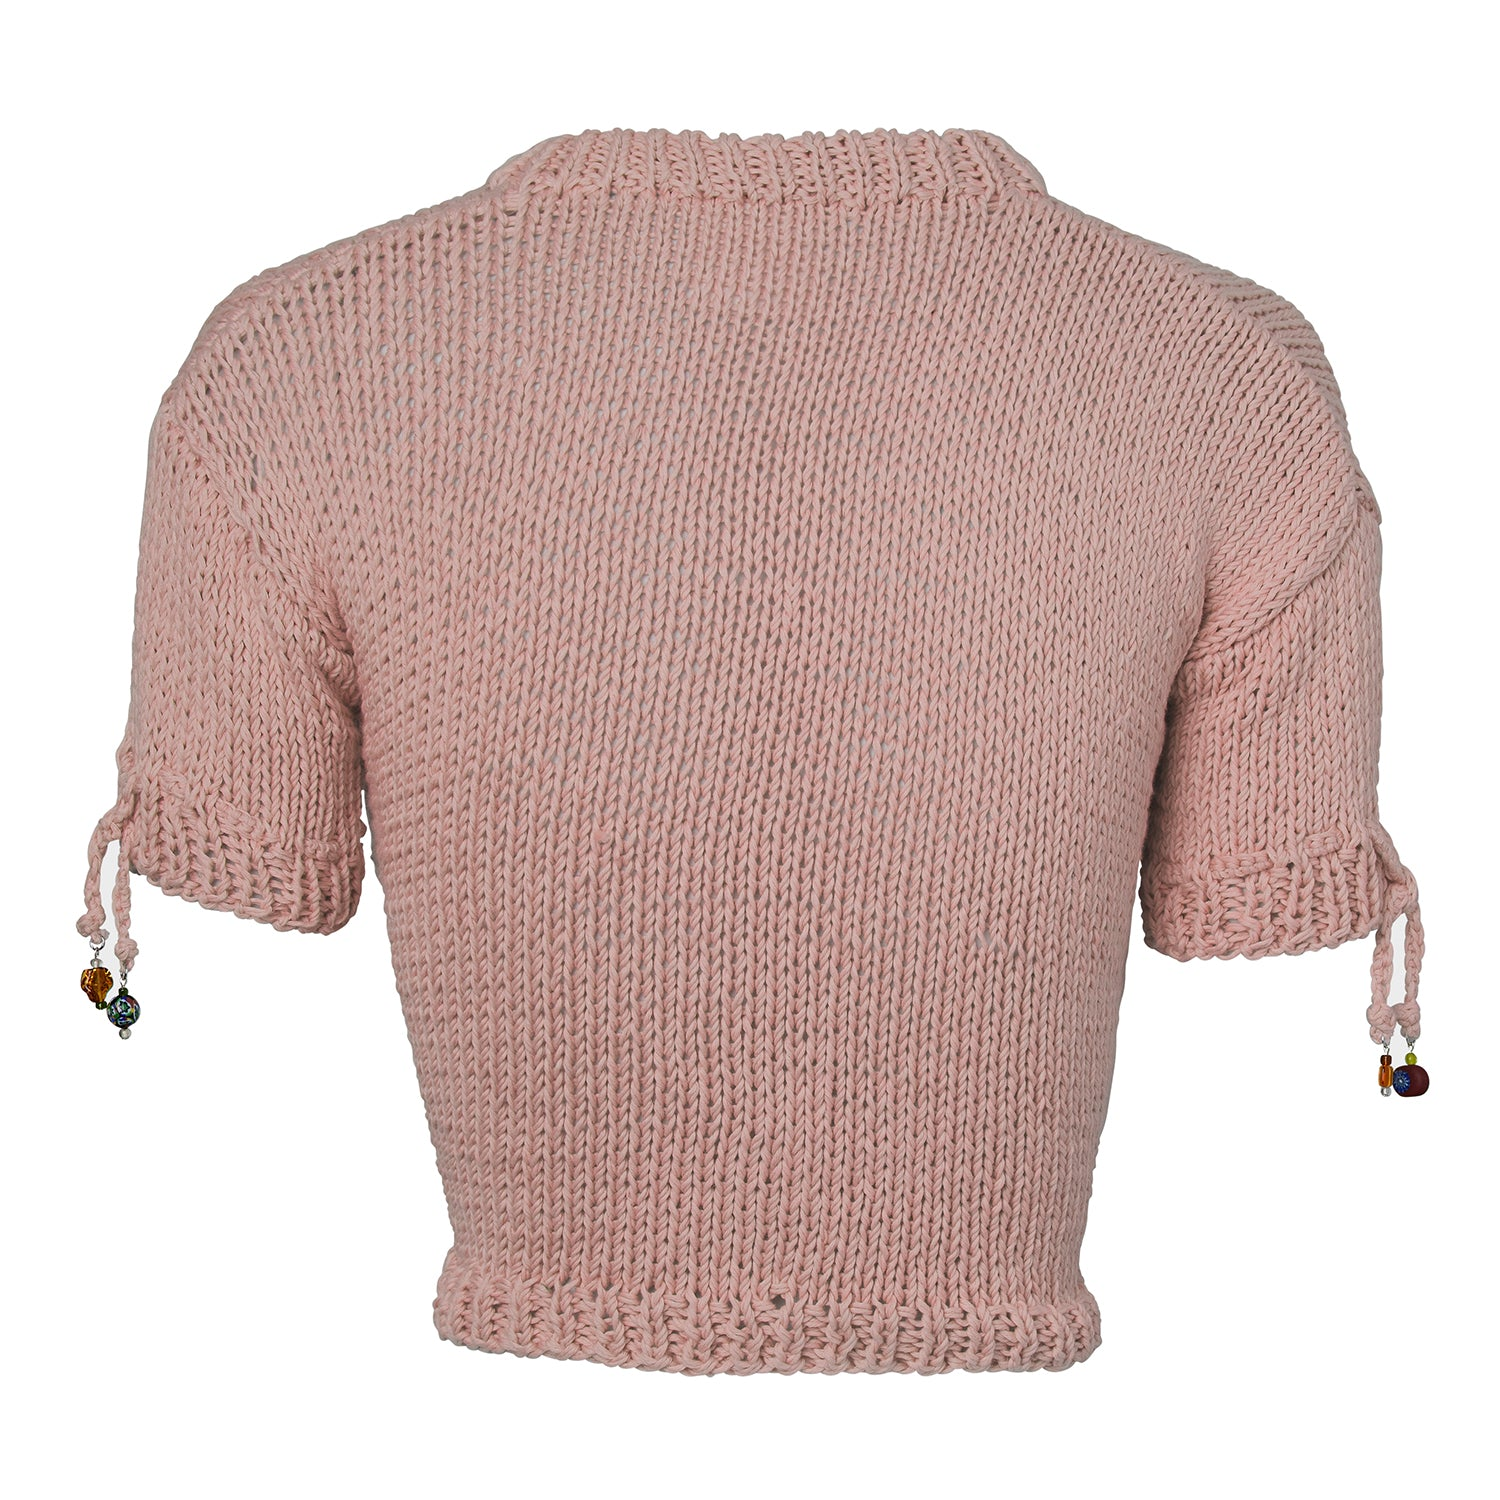 MILLEFIORI SWEATER - Tan